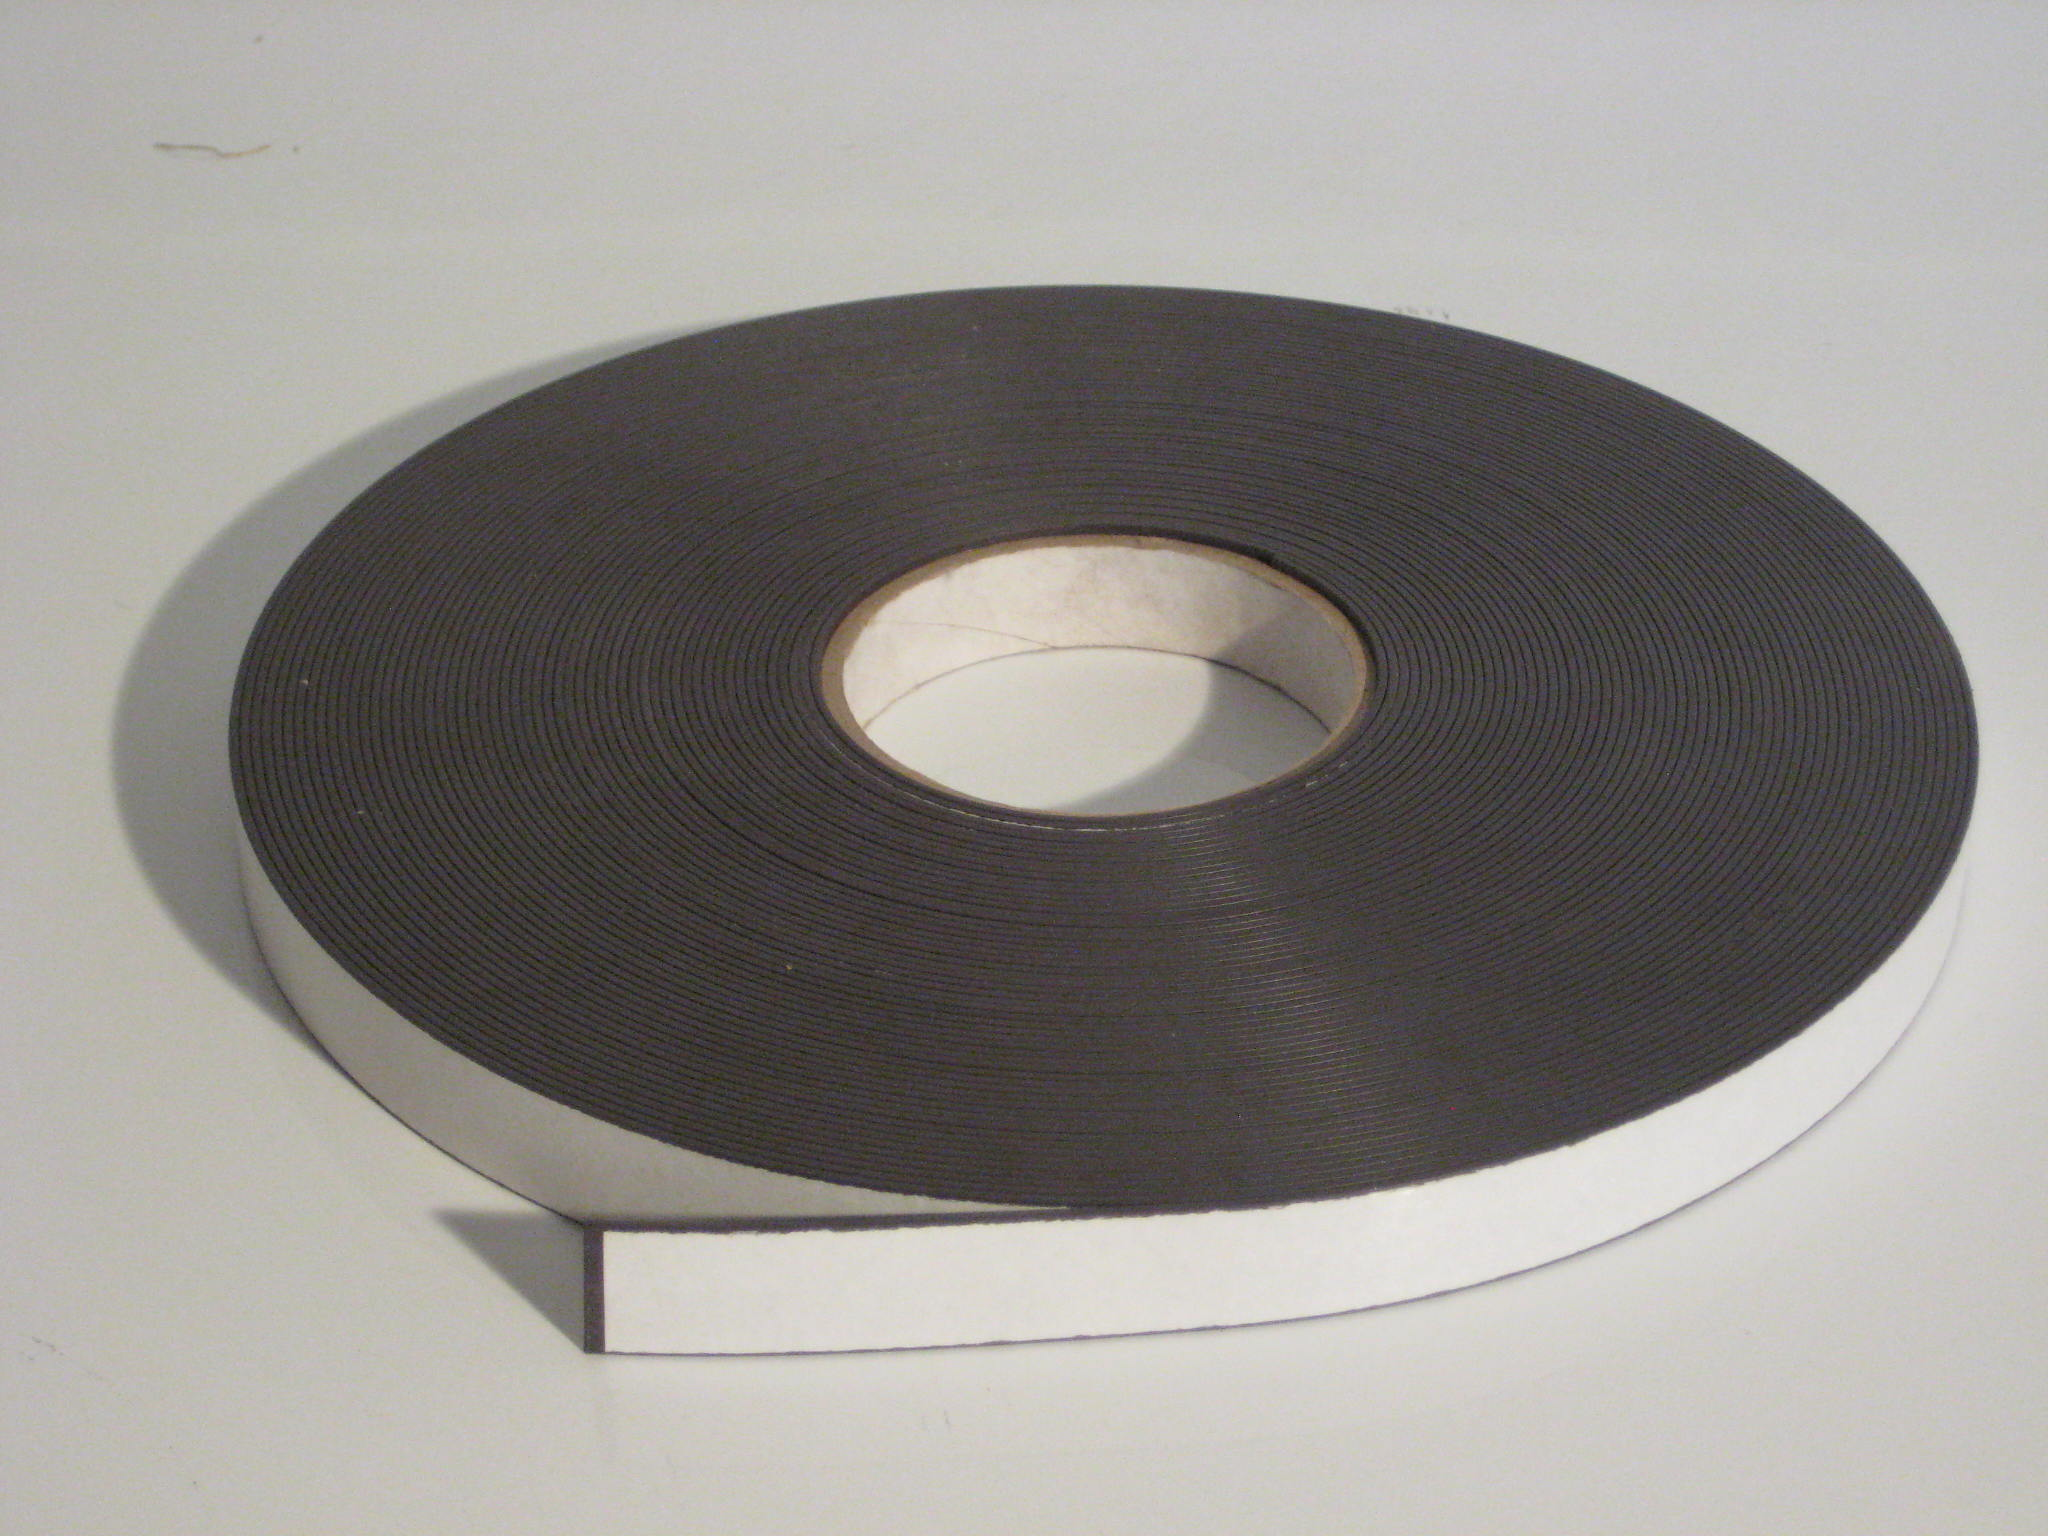 20mm X 1 5mm Standard Self Adhesive Magnetic Tape 3m Roll